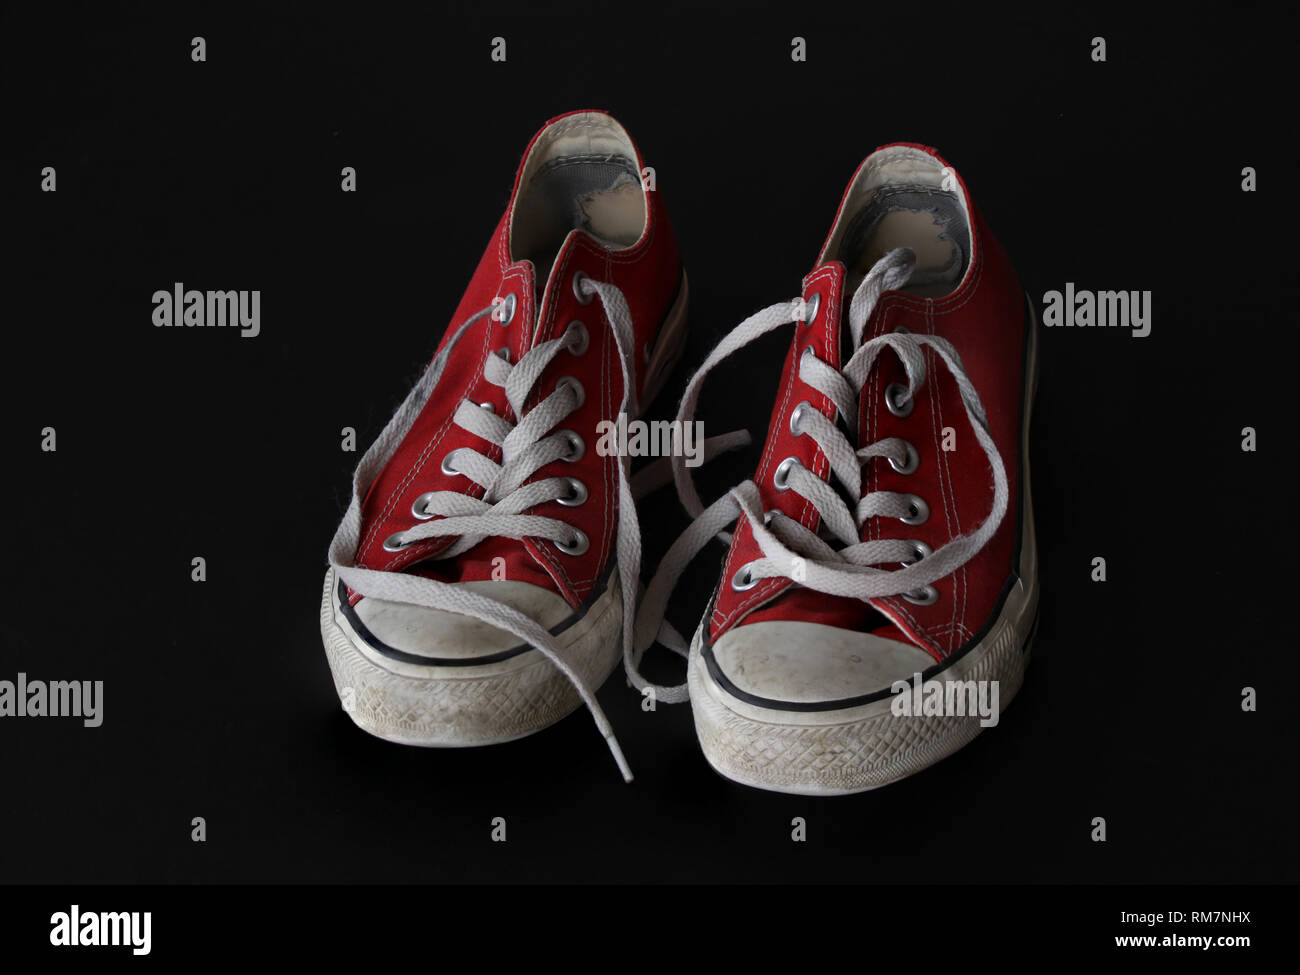 Close up of pair of sneakers - red and white vintage worn out shoes - youth hipster shoes on black background - top view - Stock Image